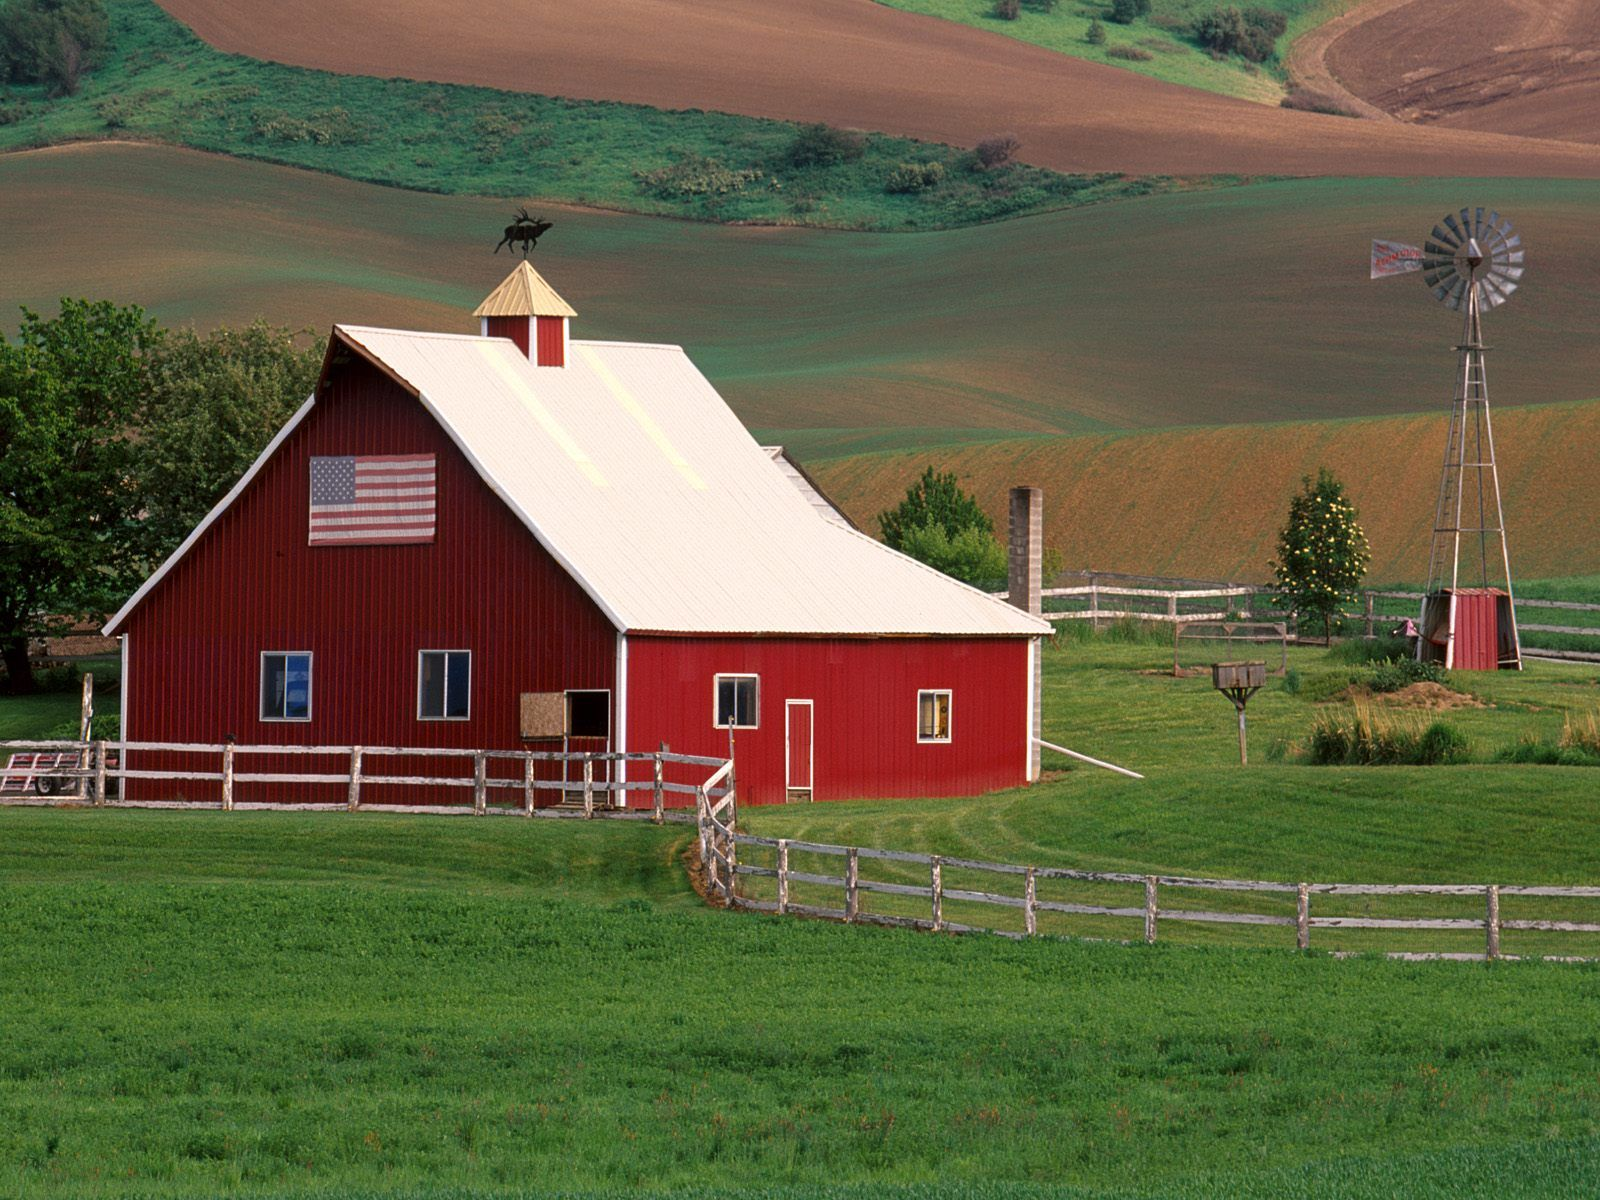 I lived on a dairy farm when i was a girl and raised for Ranch and rural living